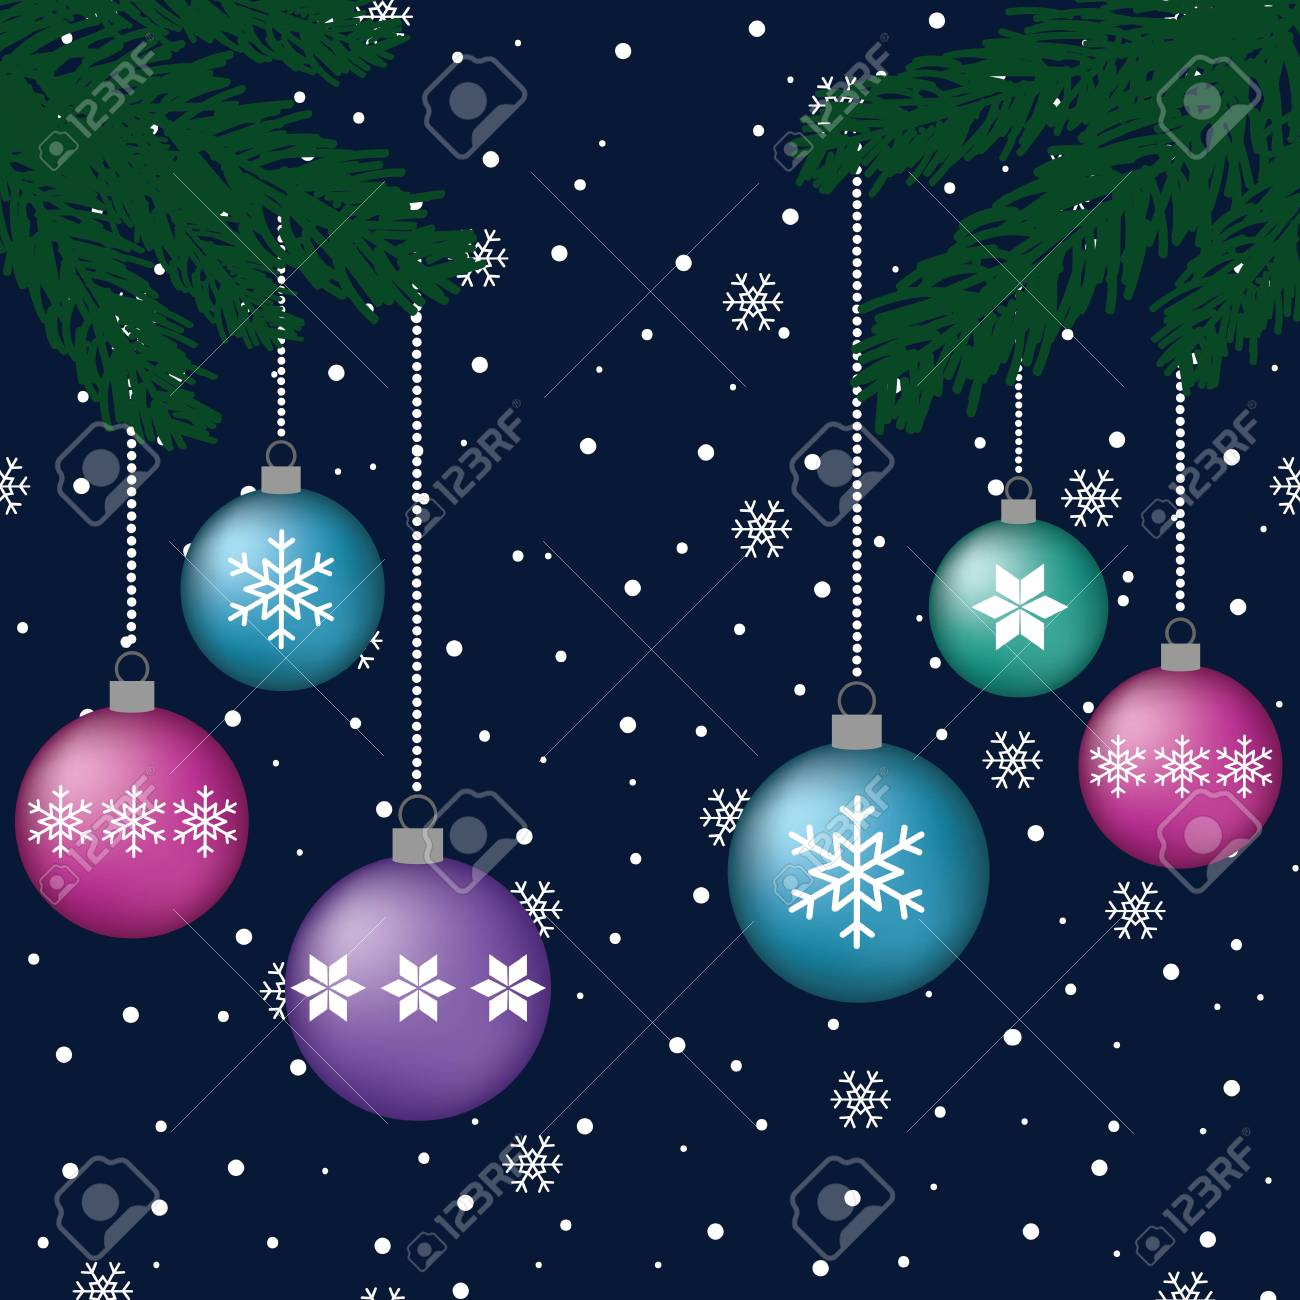 Volume Blue Purple Pink Turquoise Balls Hanging On Green Branches Royalty Free Cliparts Vectors And Stock Illustration Image 92554660